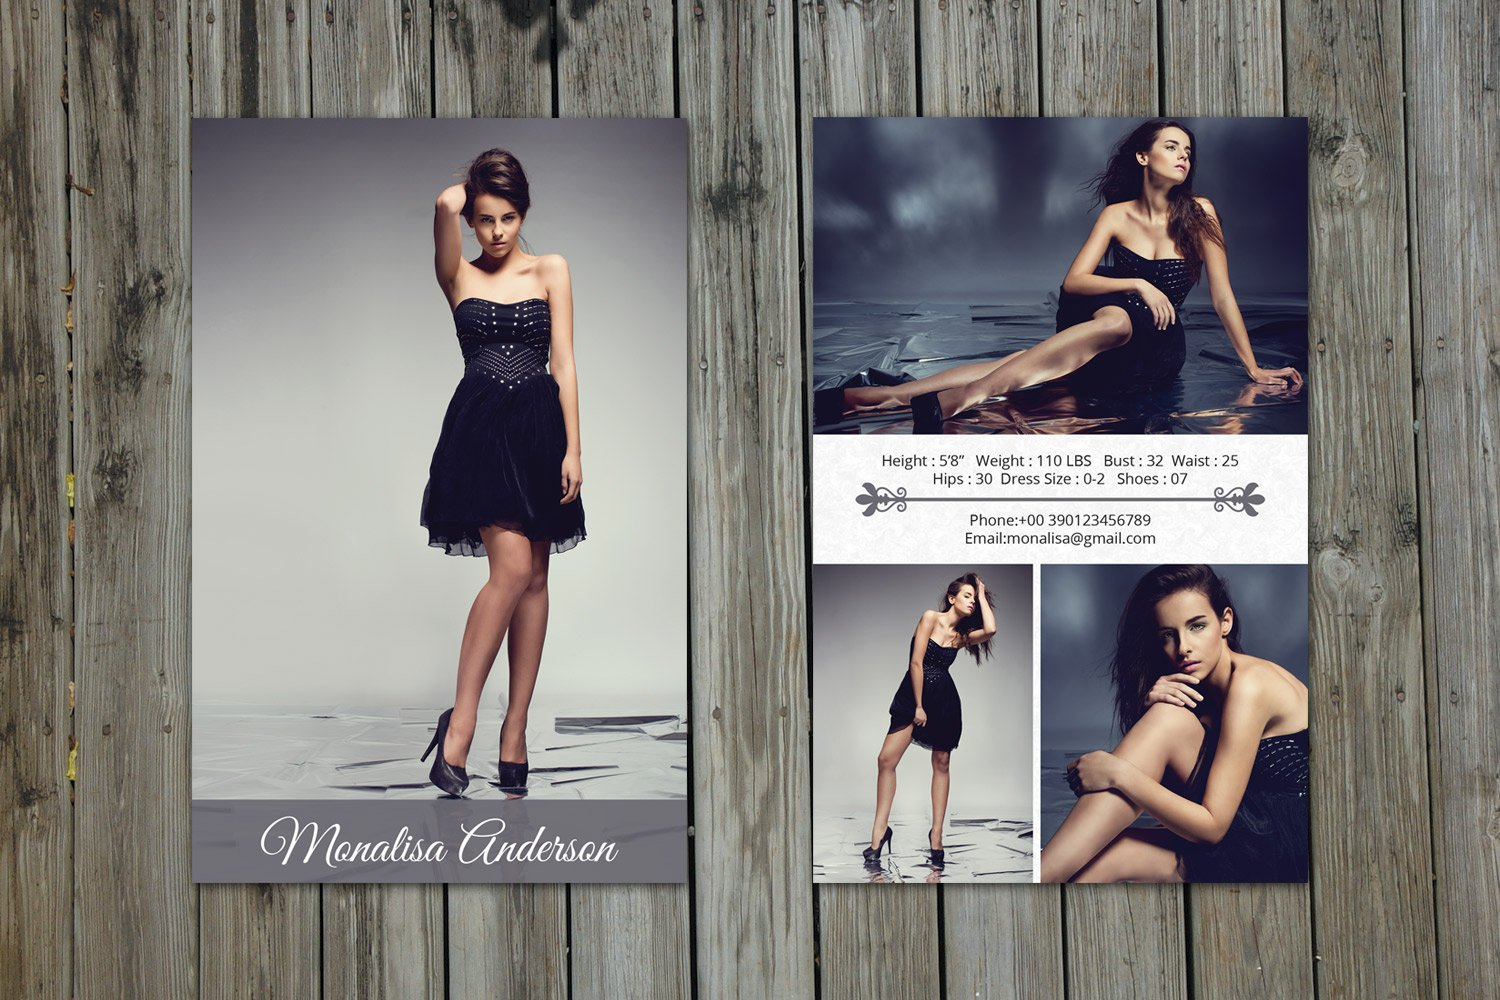 Modeling Comp Card TemplateV Flyer Templates Creative Market - Model comp card template